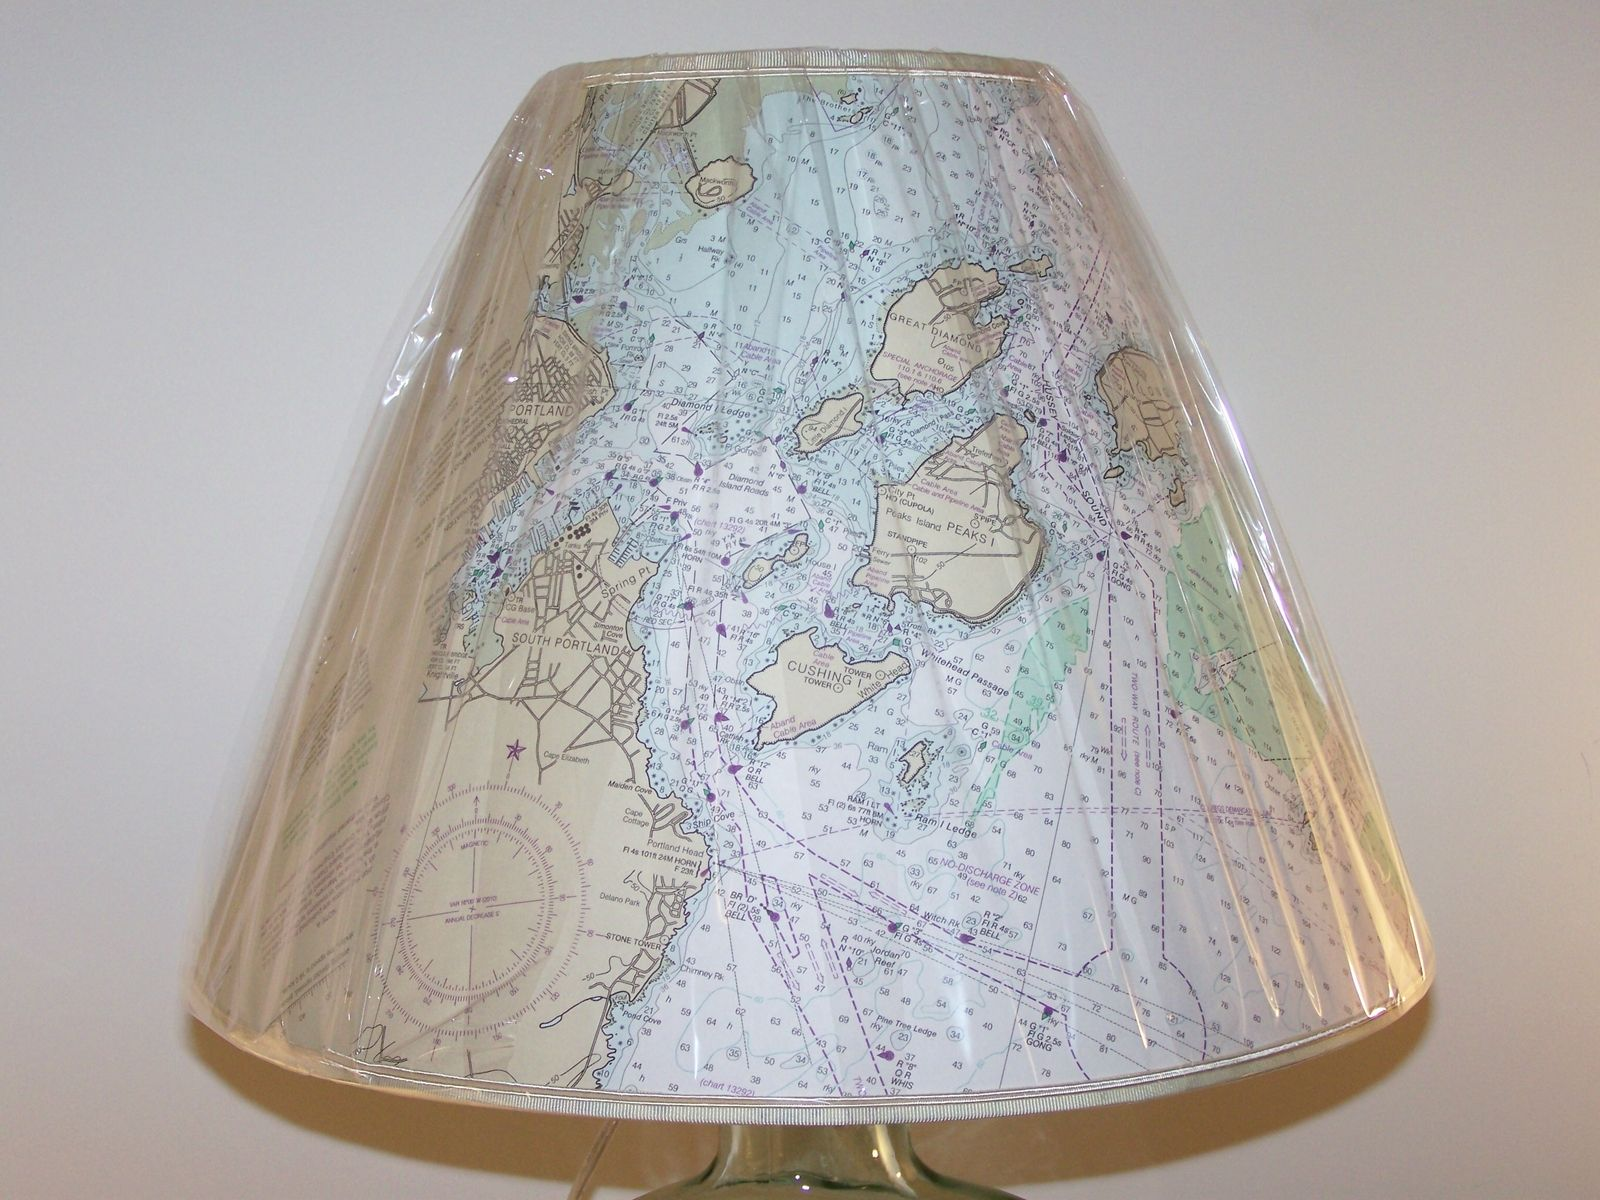 hand crafted custom made nautical chart lampshade barbara gail accent table lamps antique kidney dale tiffany dragonfly marble tulip side istikbal sofa furniture vintage retro